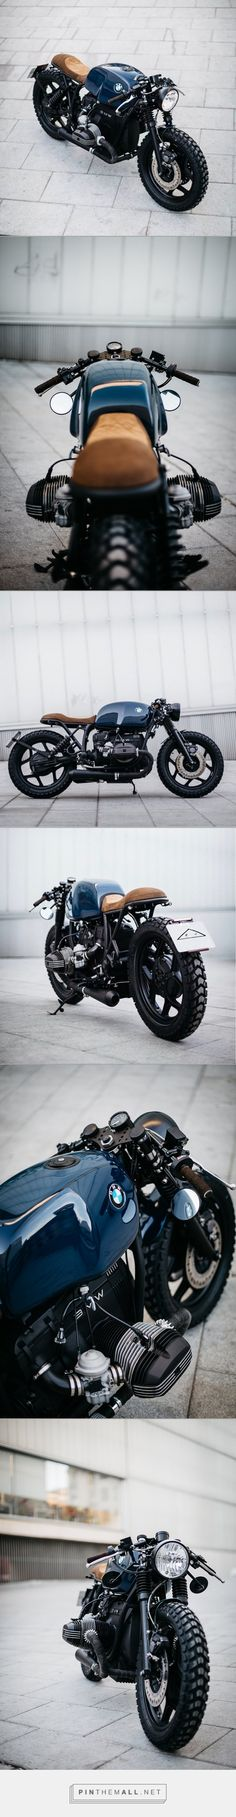 bmw oldtimer - bmw old ; bmw old school ; bmw old car ; bmw old models ; Bike Bmw, Cafe Bike, Cool Motorcycles, Bmw Cafe Racer, Cafe Racer Motorcycle, Sportster Motorcycle, Motorcycle Design, Harley Davidson, Nine T Bmw